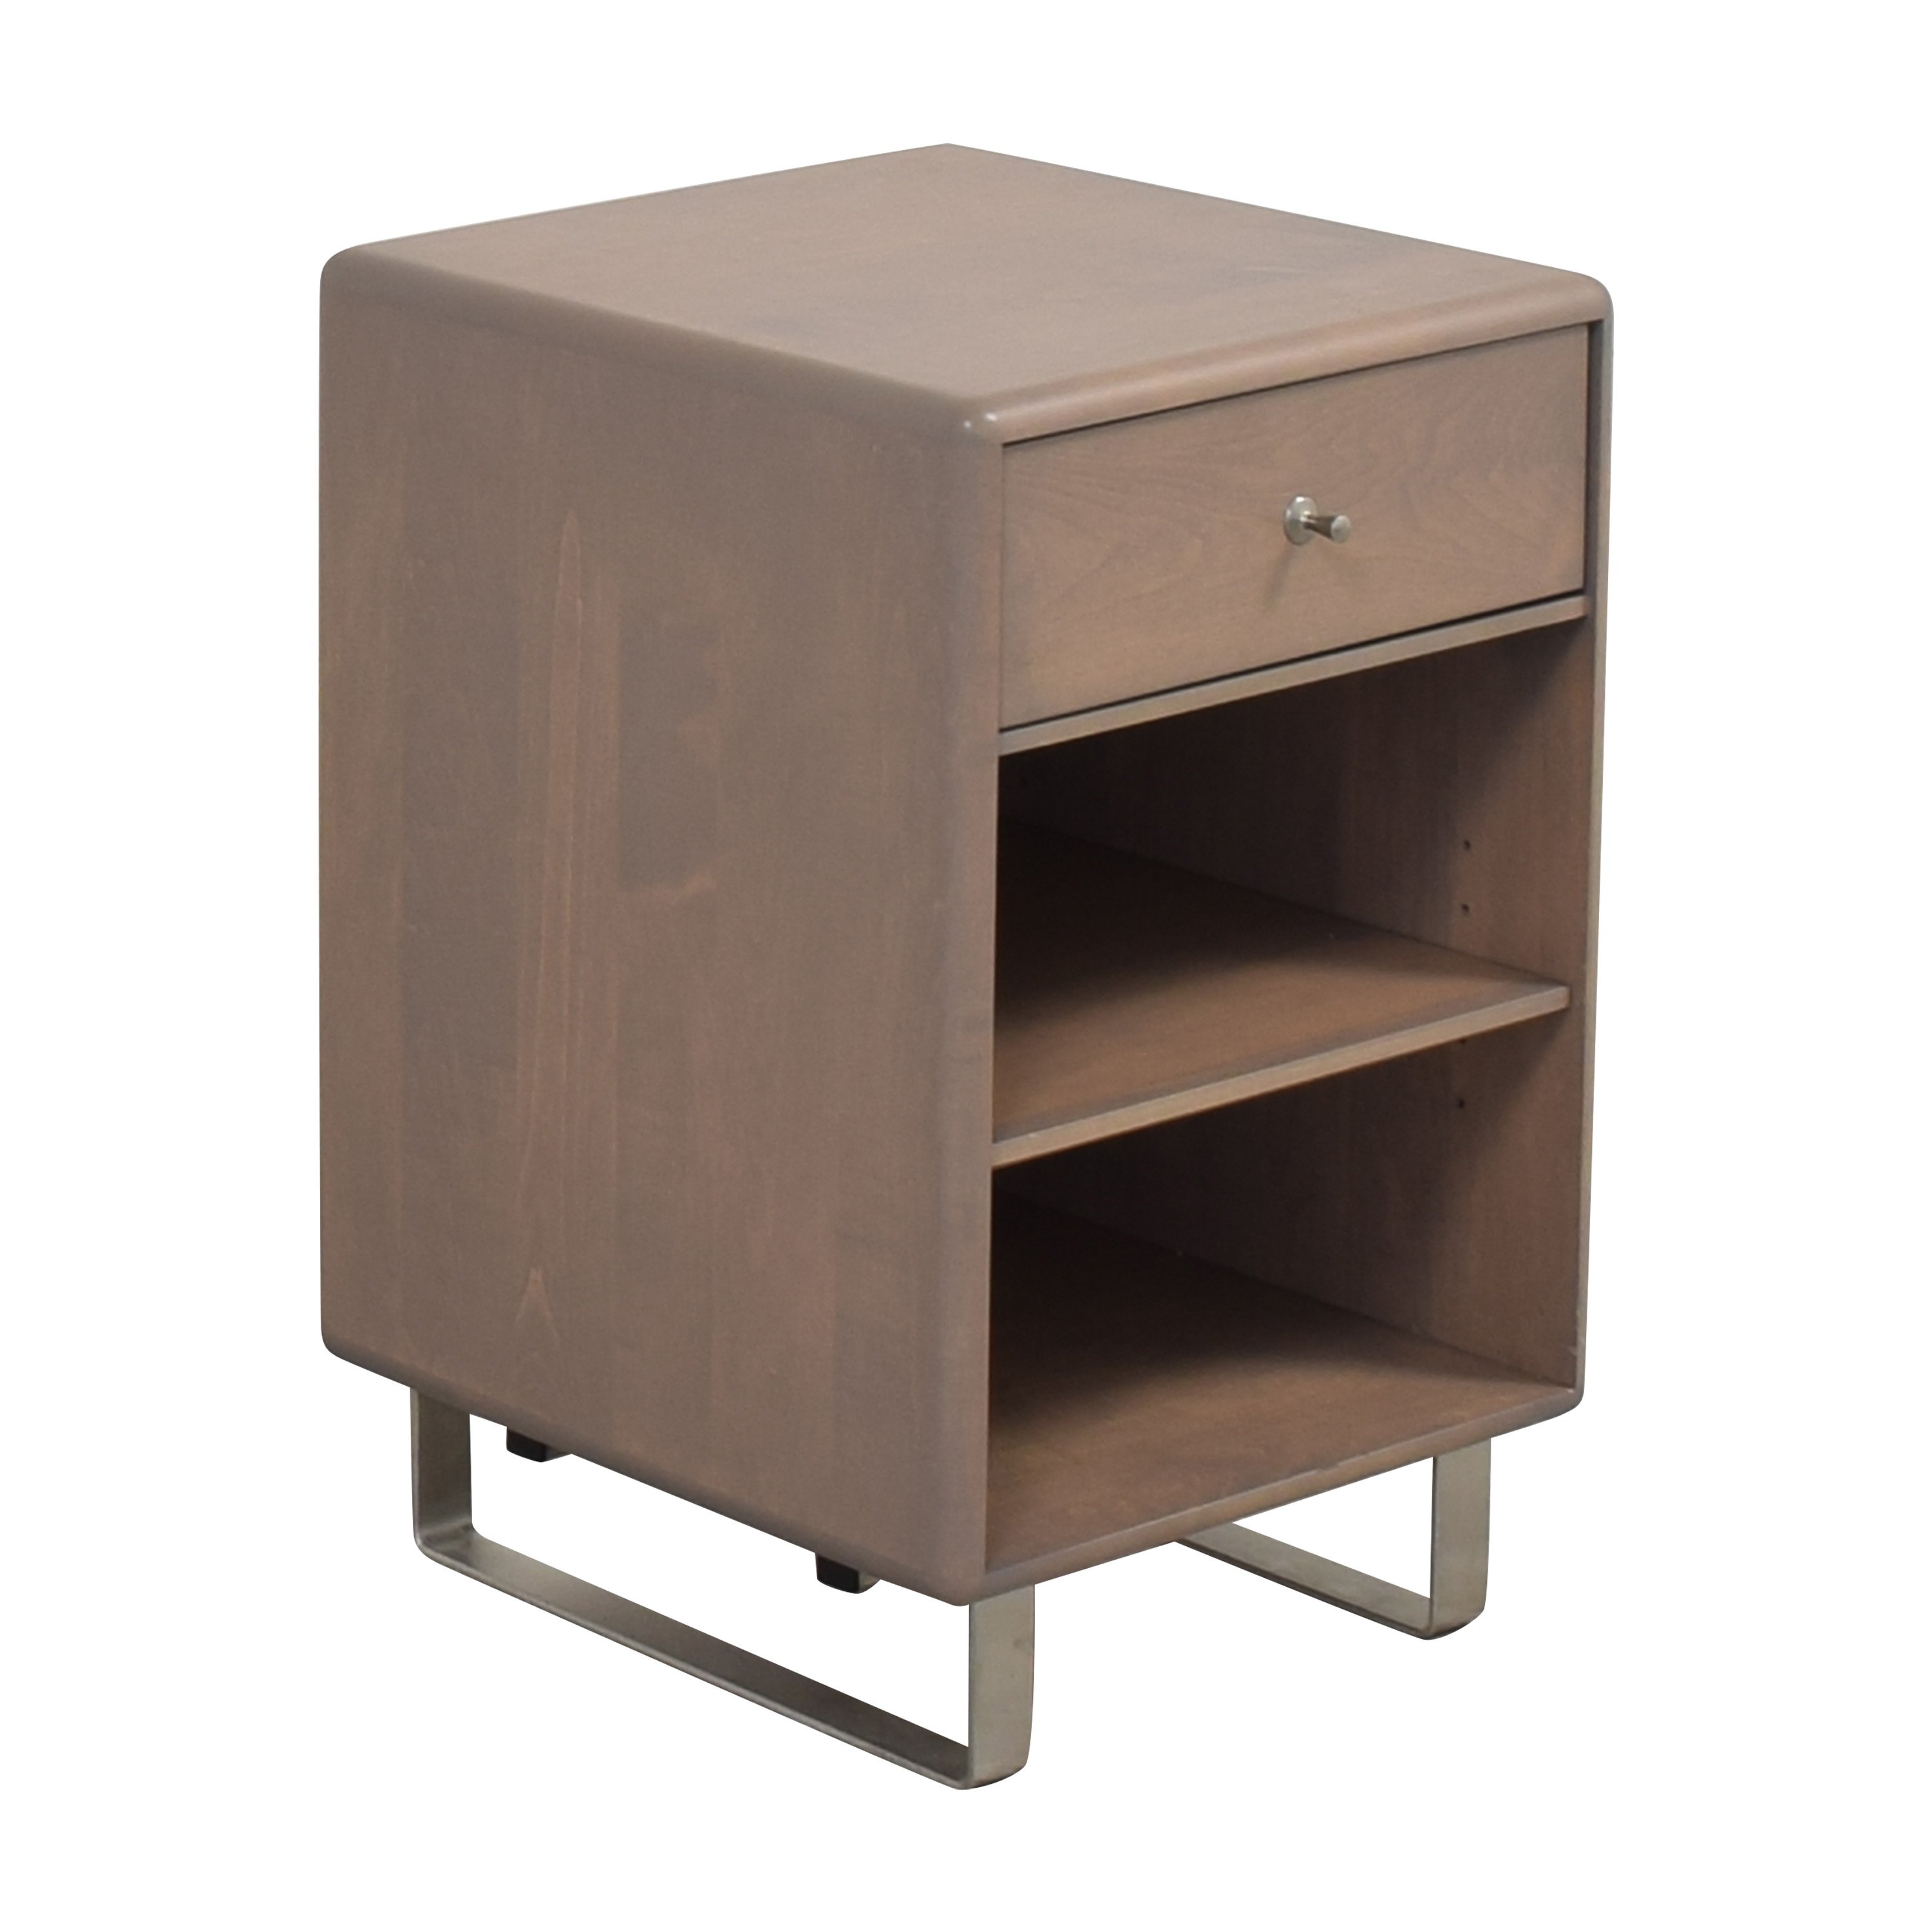 Room & Board Room & Board Whitney One Drawer Nightstand discount